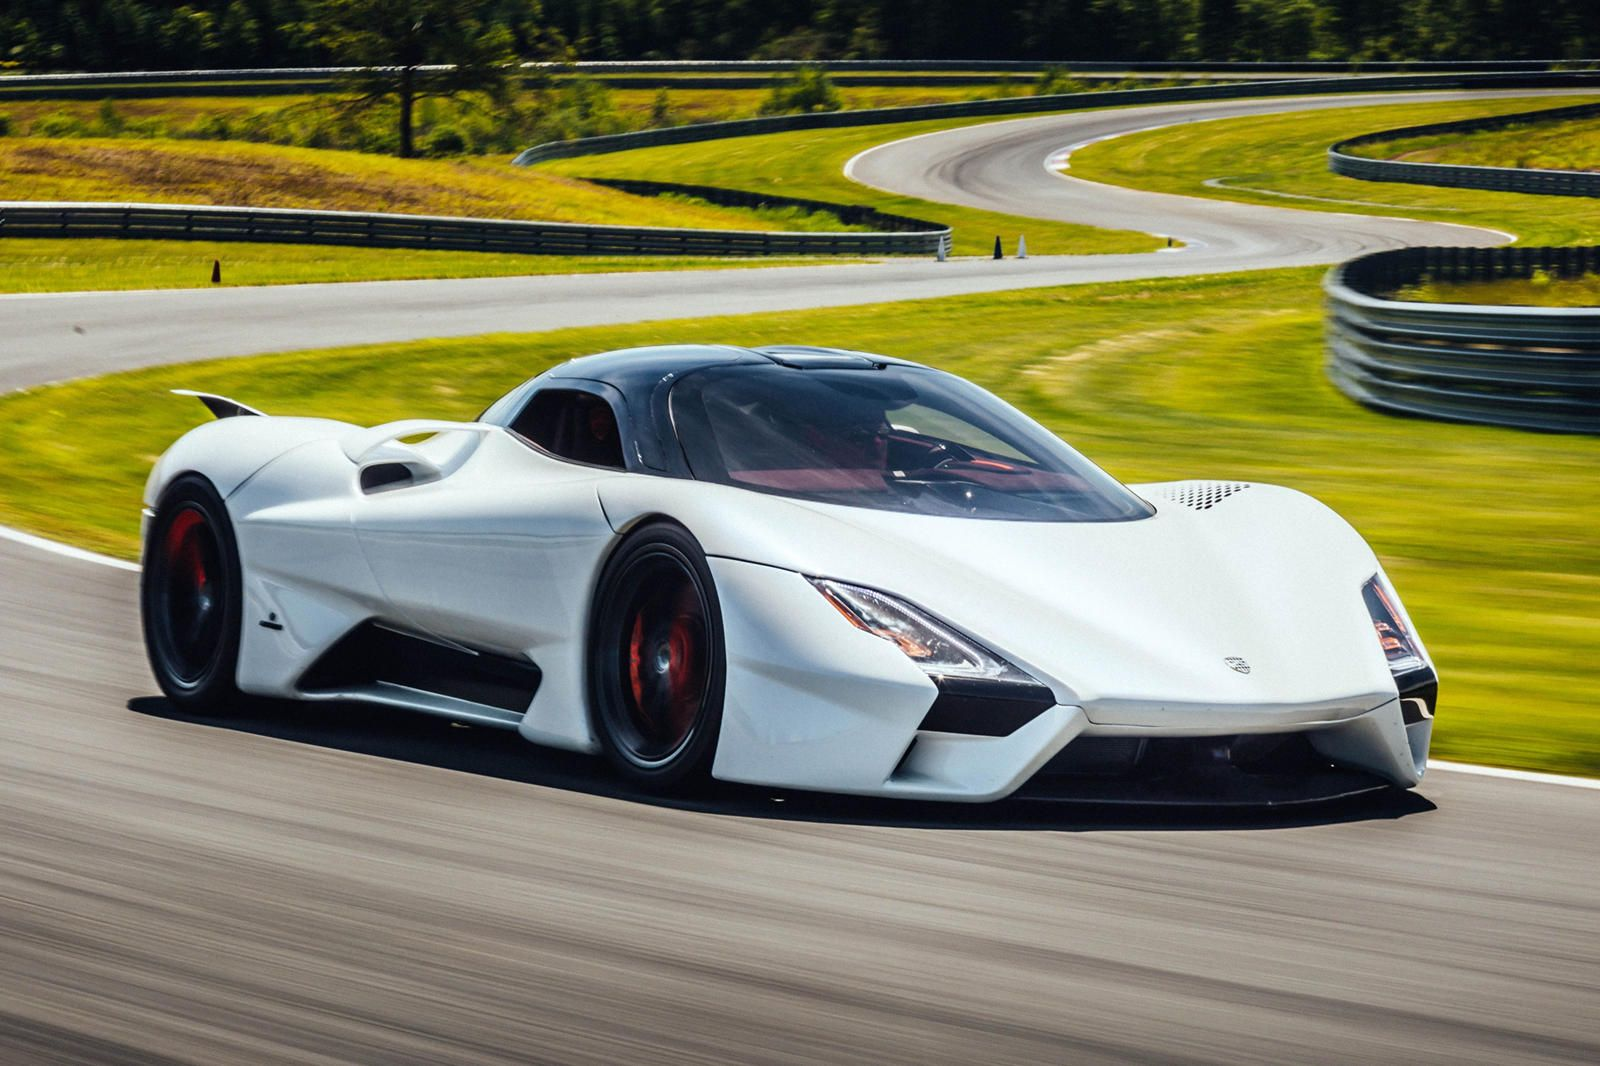 Ssc Tuatara Ready To Become Fastest Car In The World Tuatara Super Cars Most Expensive Car